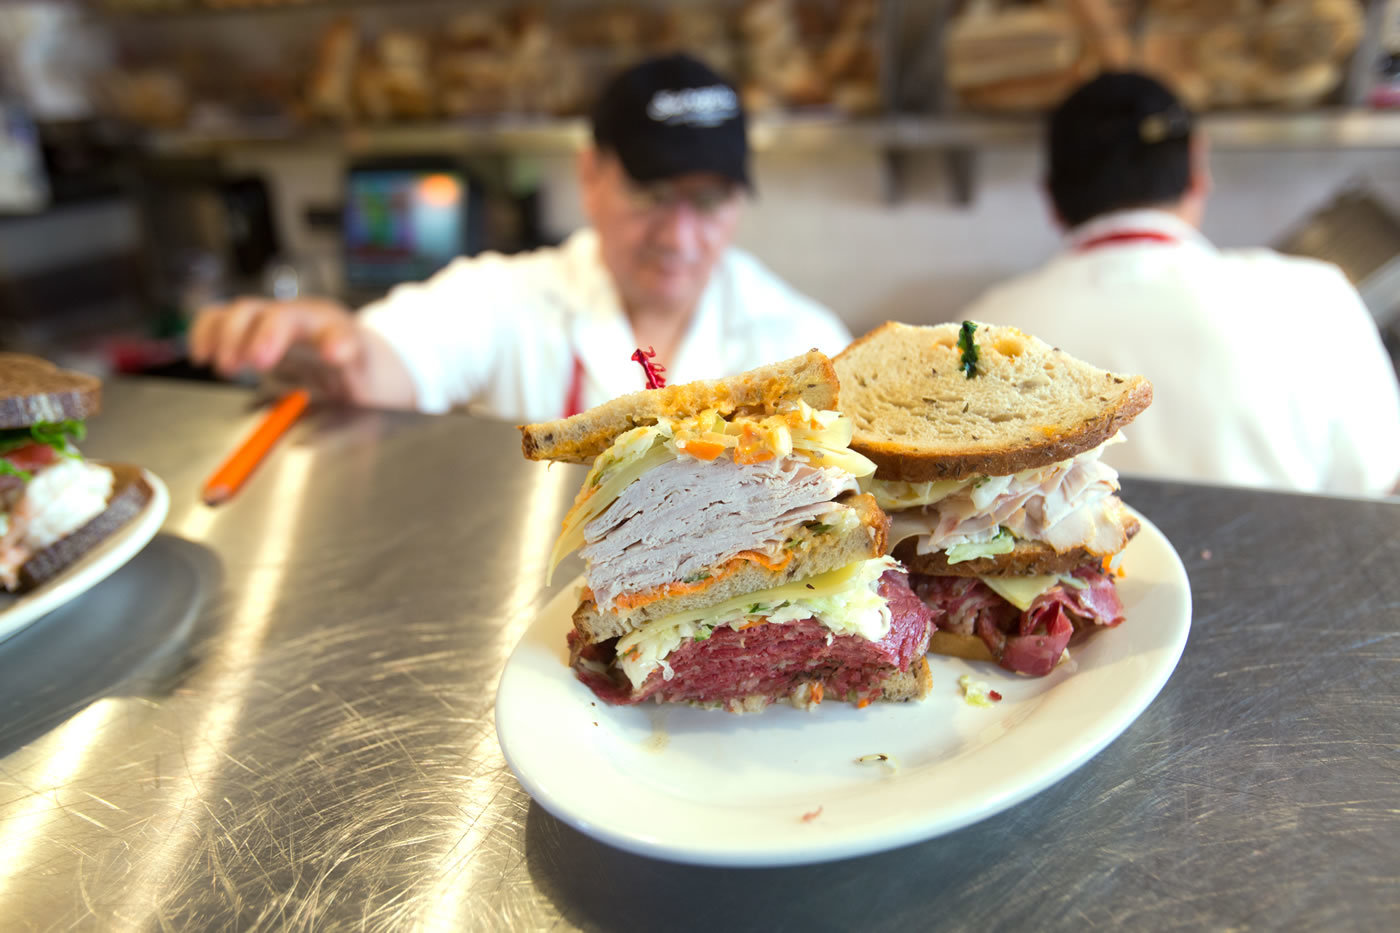 Order Up! Whose got the Turkey & Pastrami Sandwich?